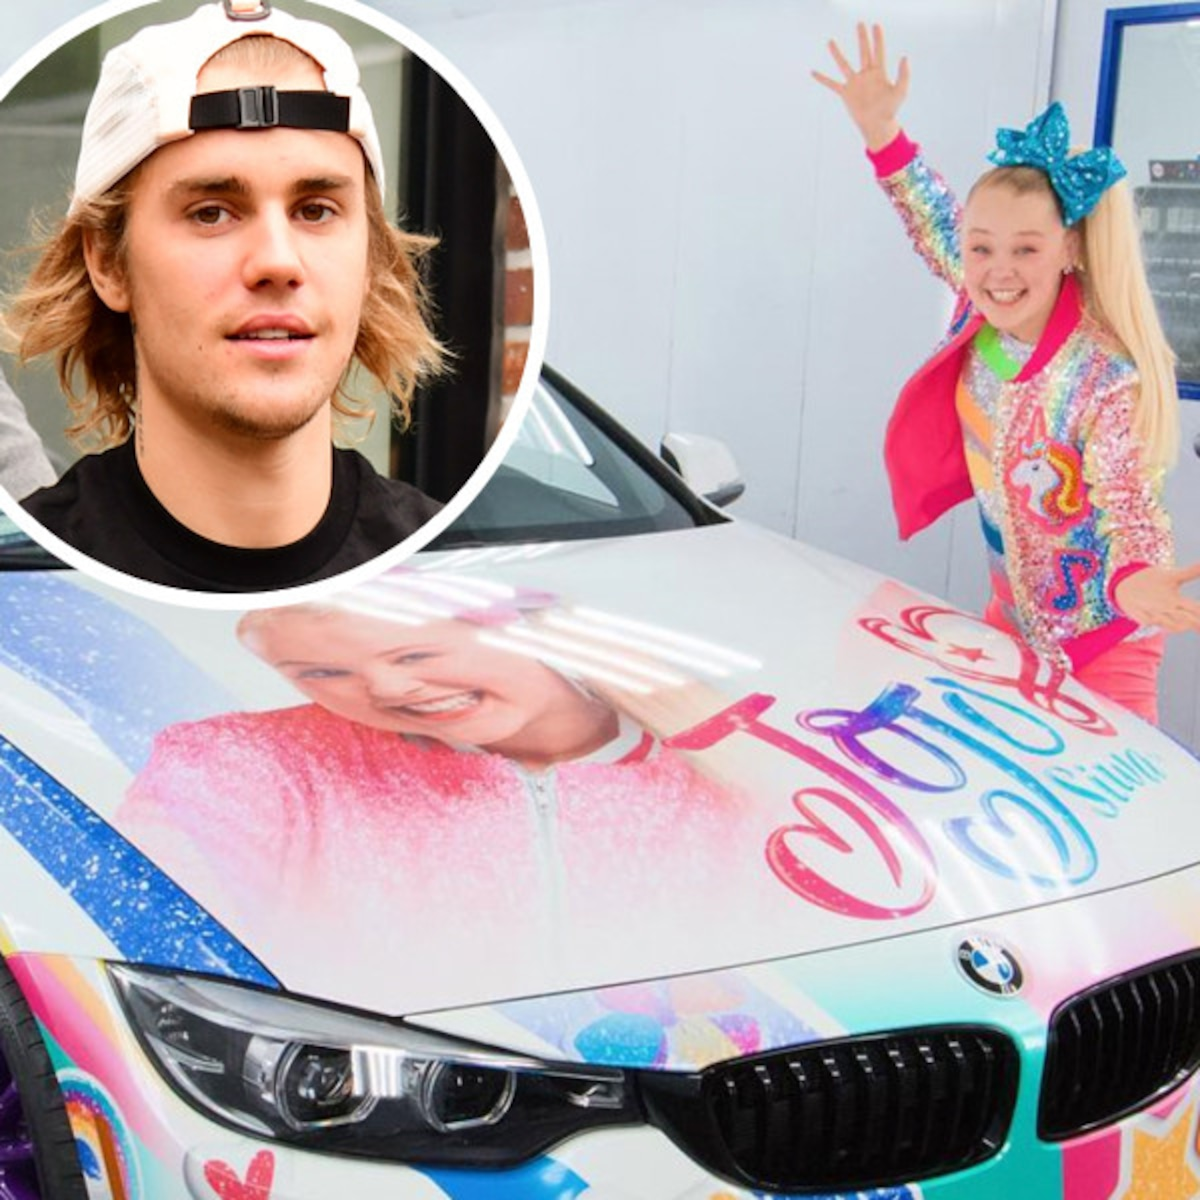 Justin Bieber Reaches Out To Youtuber Jojo Siwa After Shading Car